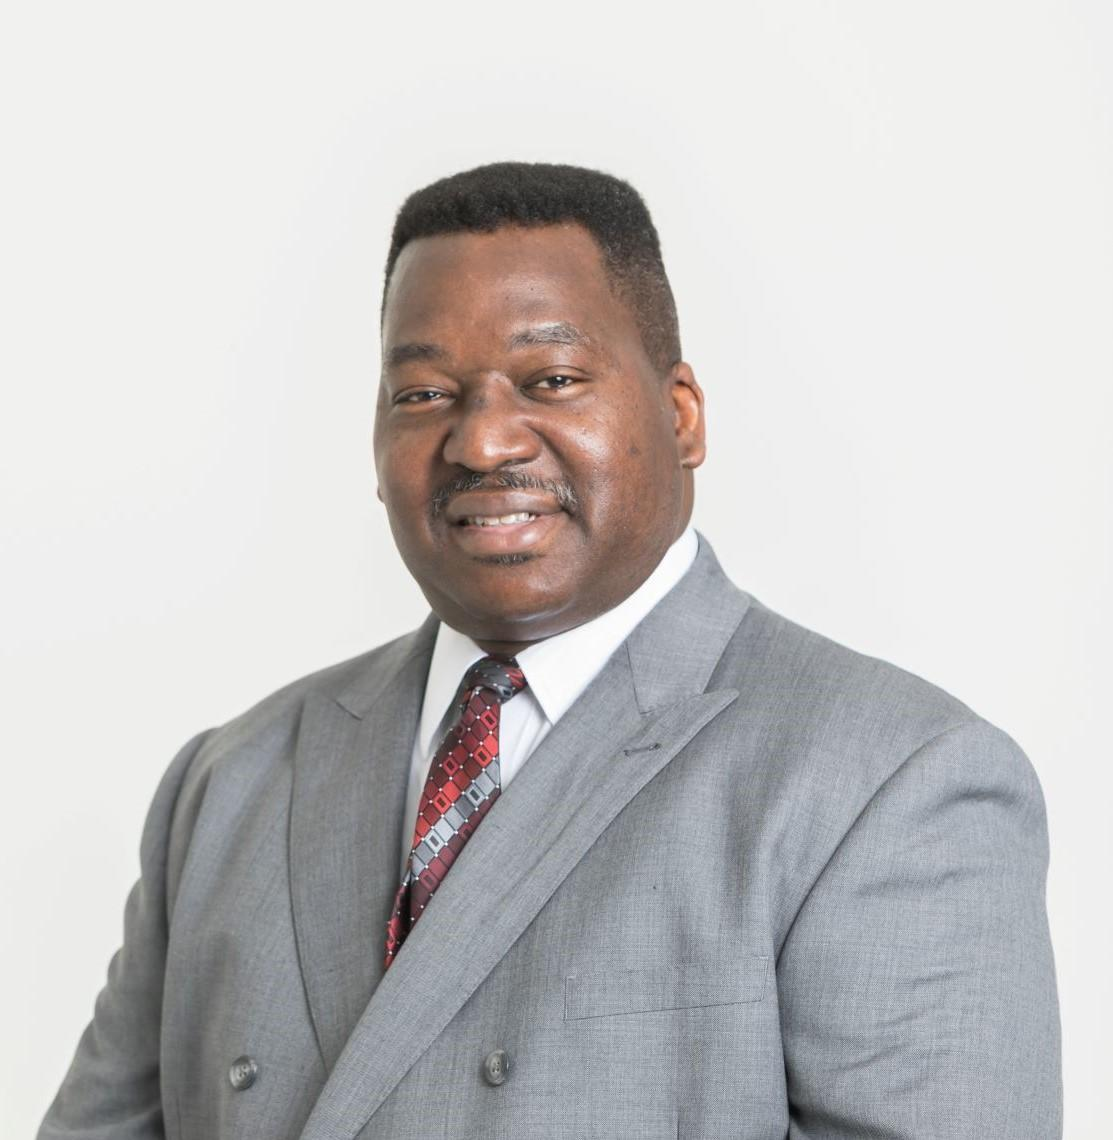 SHERWOOD L. BROWN Your Financial Professional & Insurance Agent